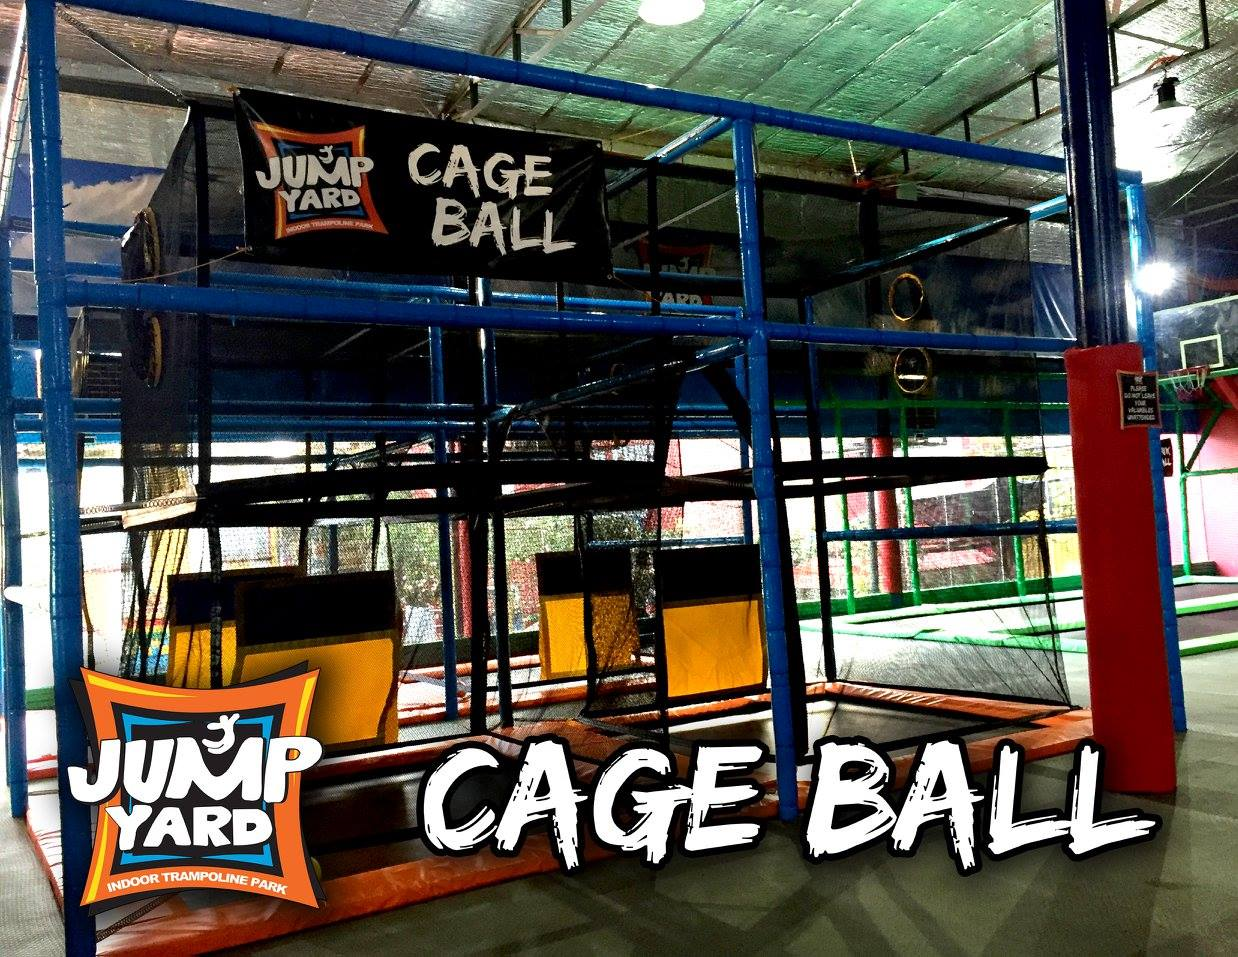 Get your game face on and score the most points in 2 minutes by shooting into the opposite goal. Play at the Cage Ball area.